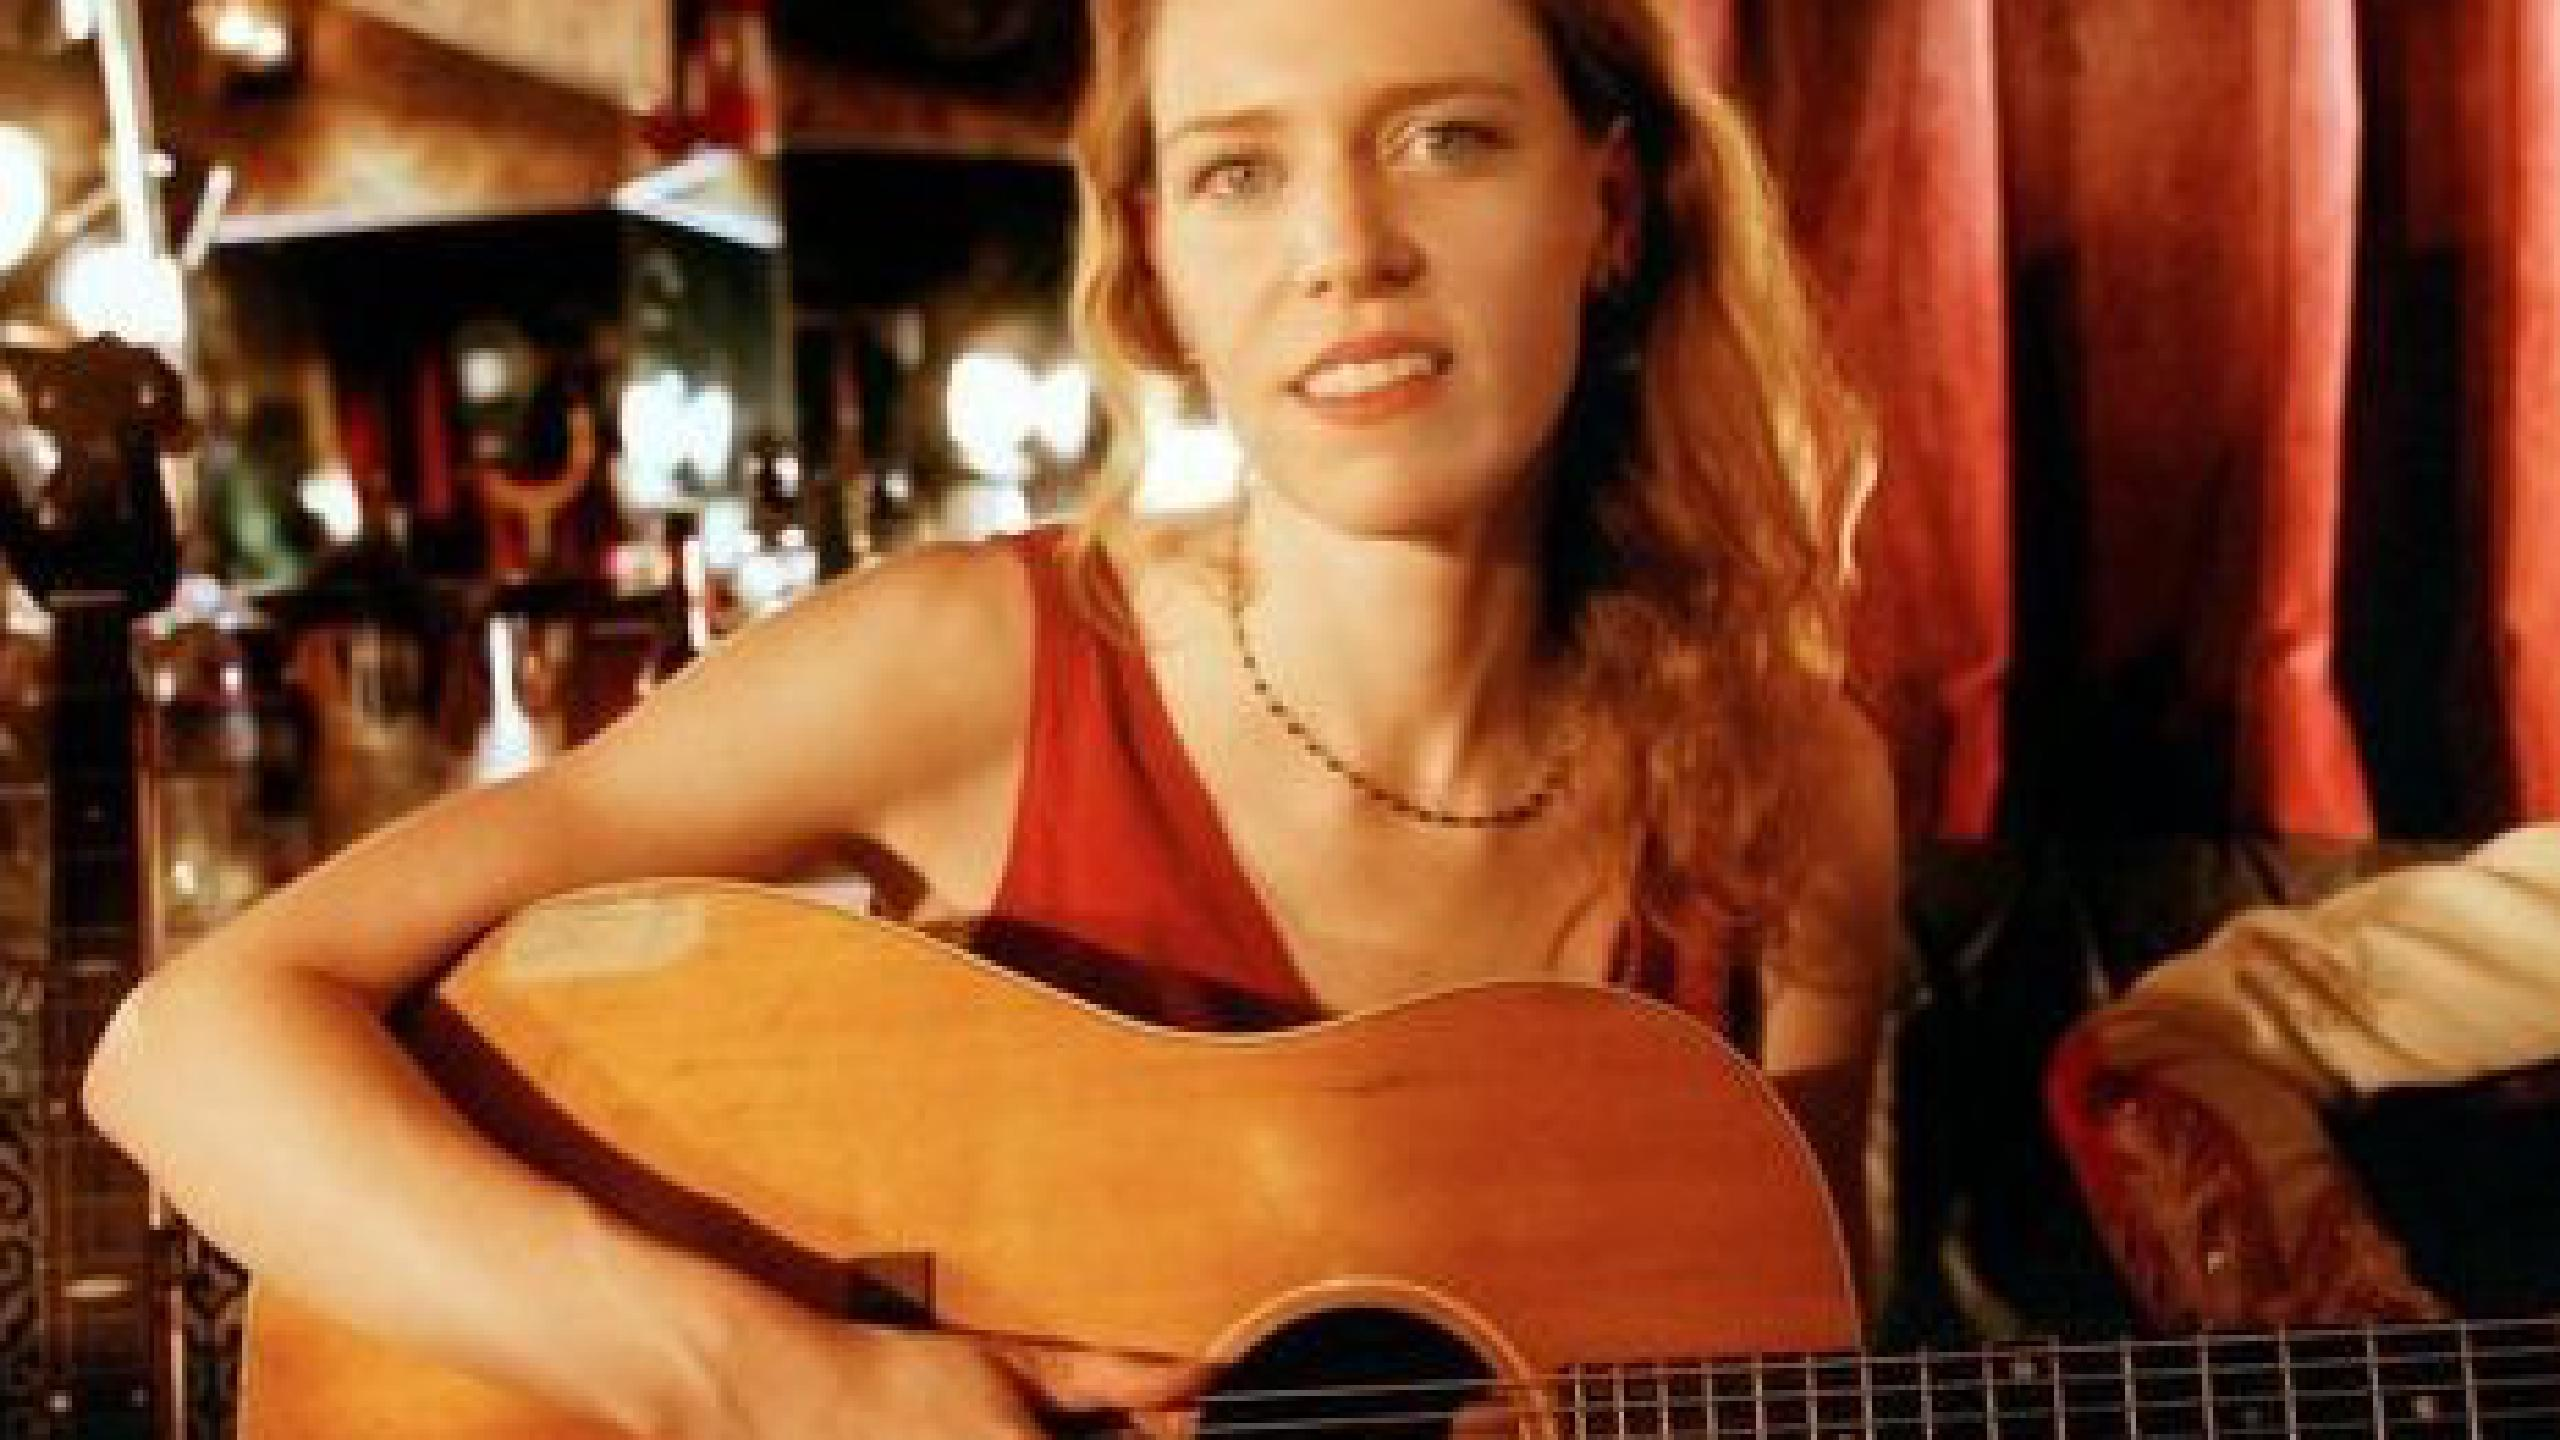 narrative criticism of gillian welch's caleb Lyrics to 'caleb meyer' by gillian welch caleb meyer, he lived alone / in them hollarin' pines / he made a little whiskey for himself / said it helped to pass the time /.